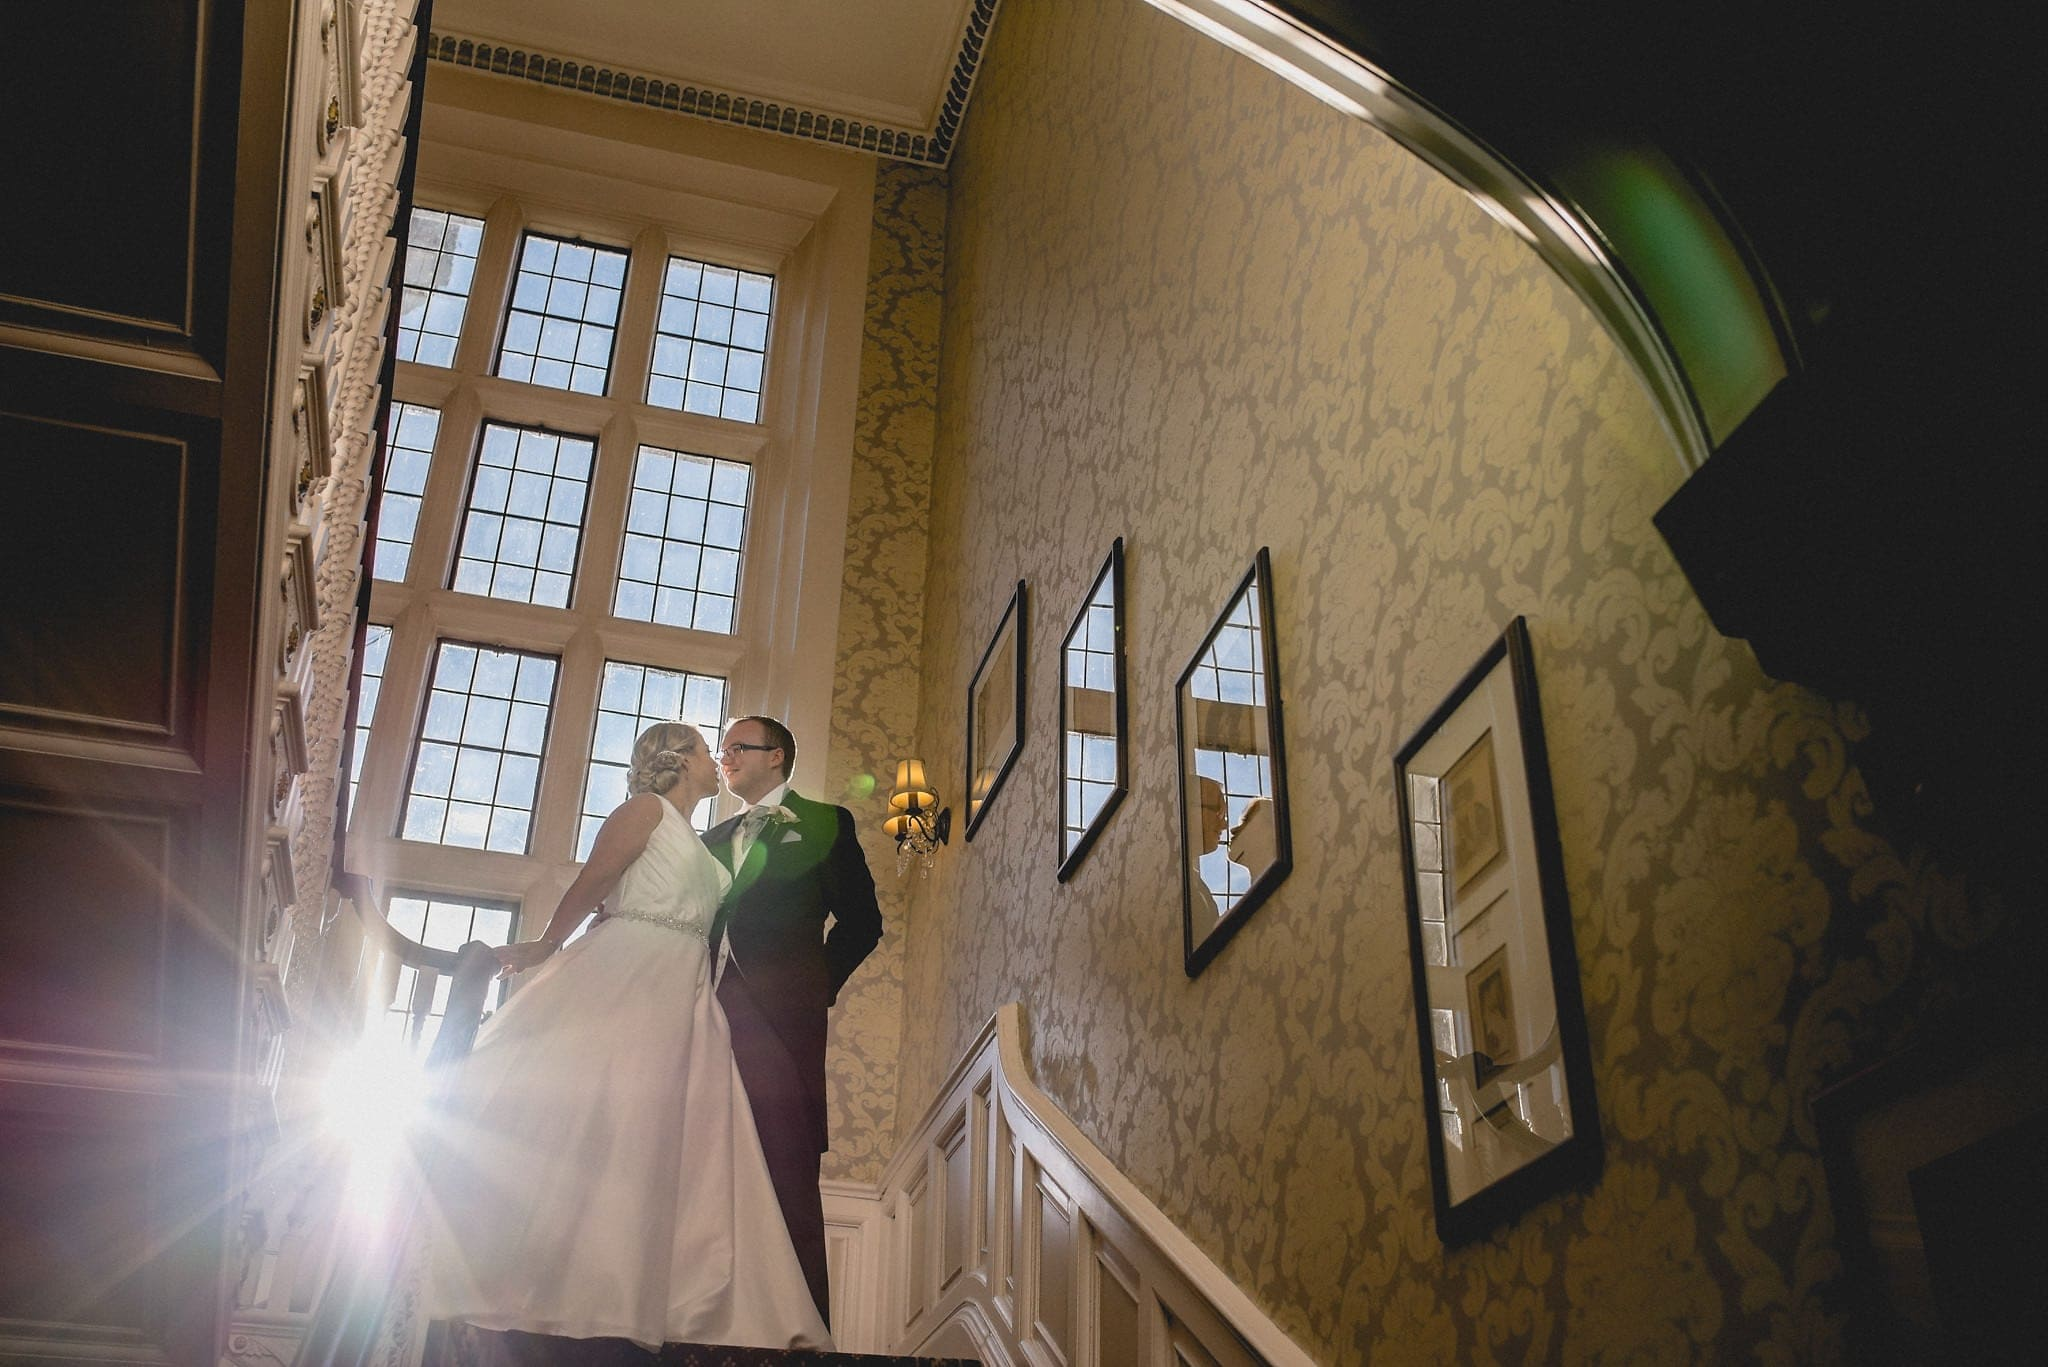 Bride and groom kiss at the top of a sunlit staircase